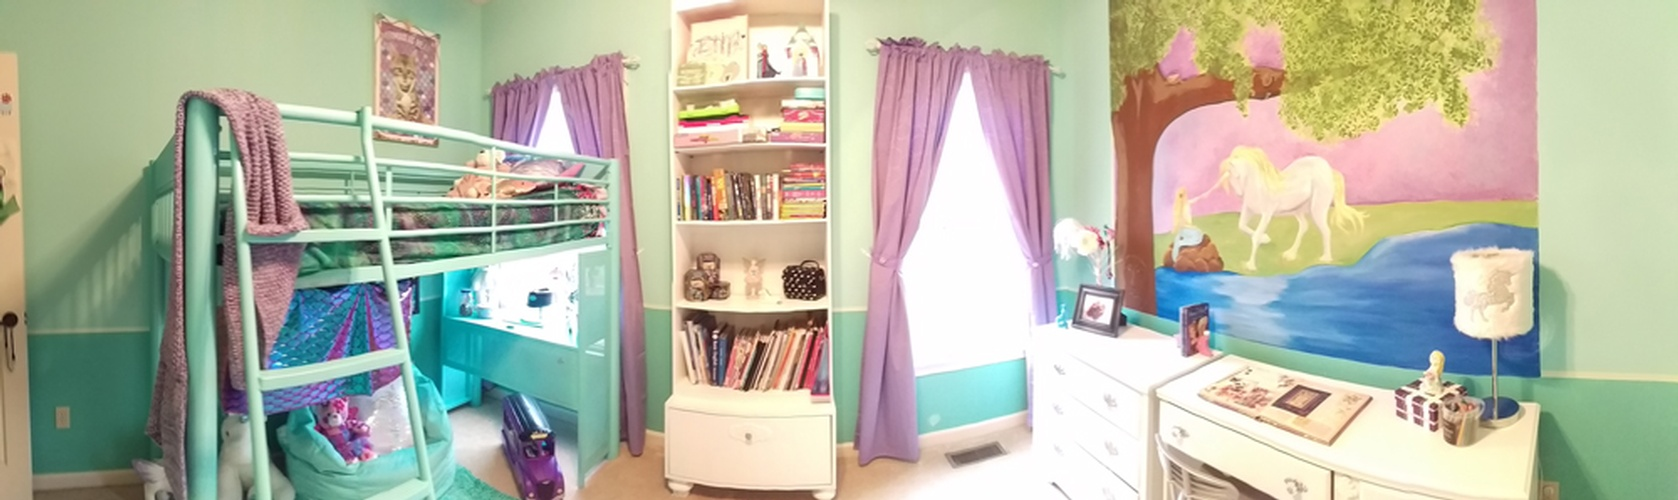 Kids Room with a Bunk Bed and a Bookshelf - Interior Decorator Alpharetta by Sage Key Interiors